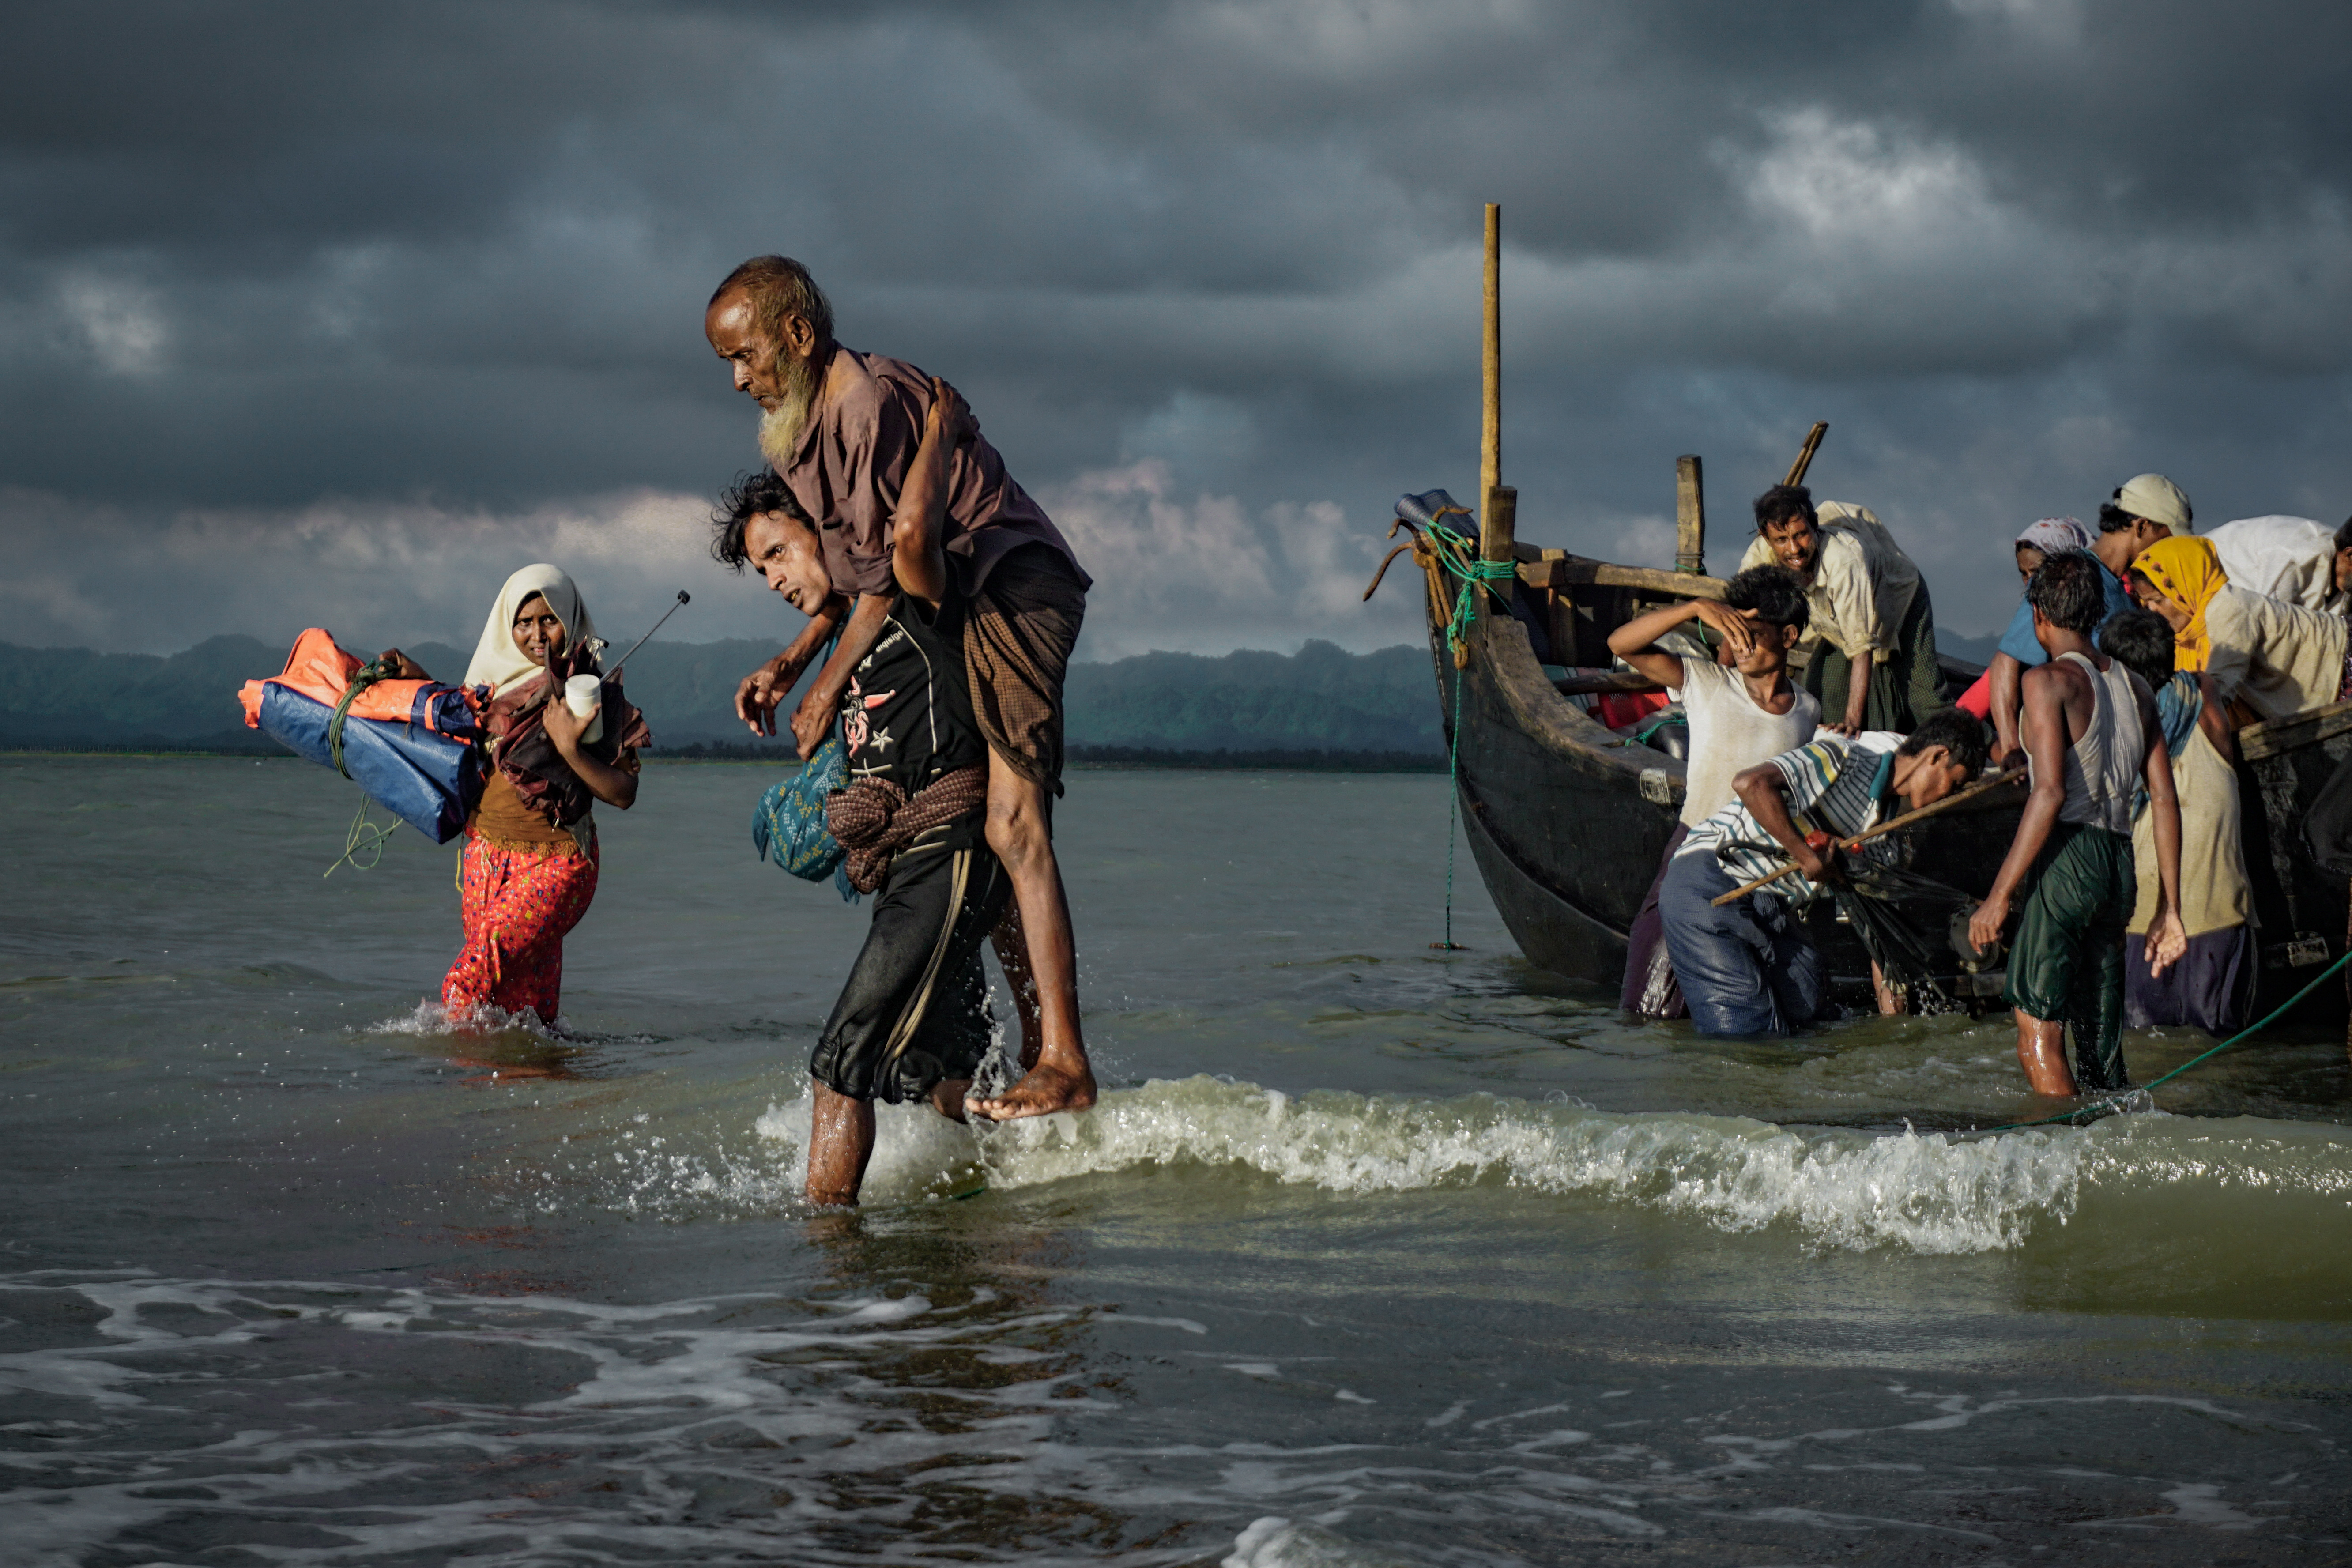 Rohingya Muslim refugees disembark from a boat on the Bangladeshi side of Naf river in Teknaf on Sept. 13, 2017.